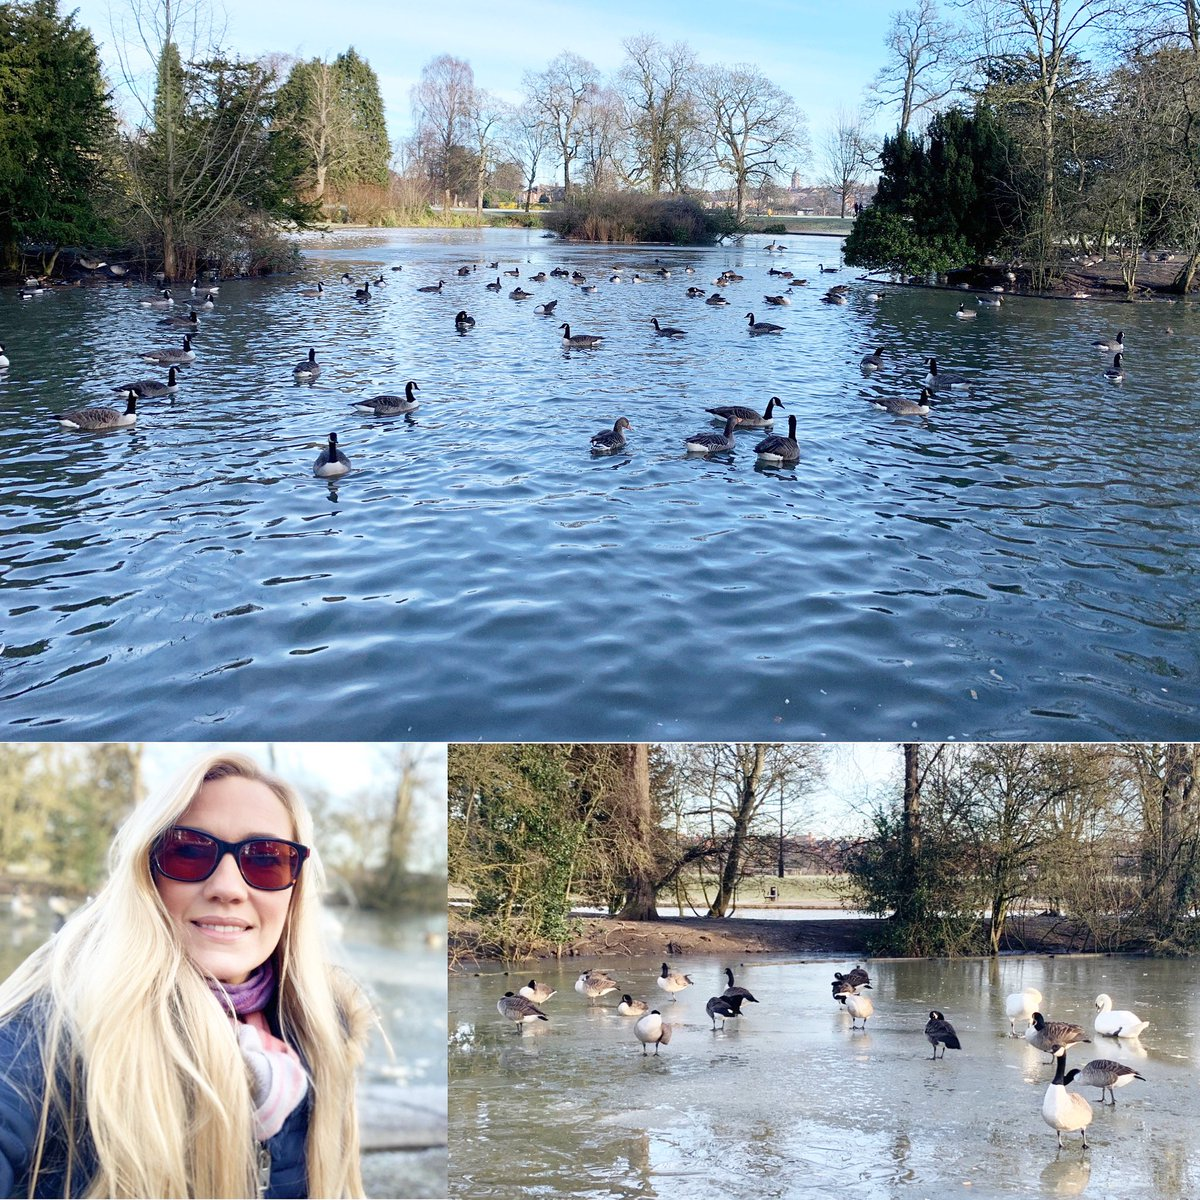 #DryJanuary day 24: #naturebaby 💚 Being outdoors is so important for our #mentalhealth & #wellbeing 🌳 Today I enjoyed a beautiful walk - watching the ducks 🦆& swans was so peaceful 💚 How was your day?☕️ 🫖 #greatoutdoors #lovewalking #lovenature @dryjanuary @AlcoholChangeUK